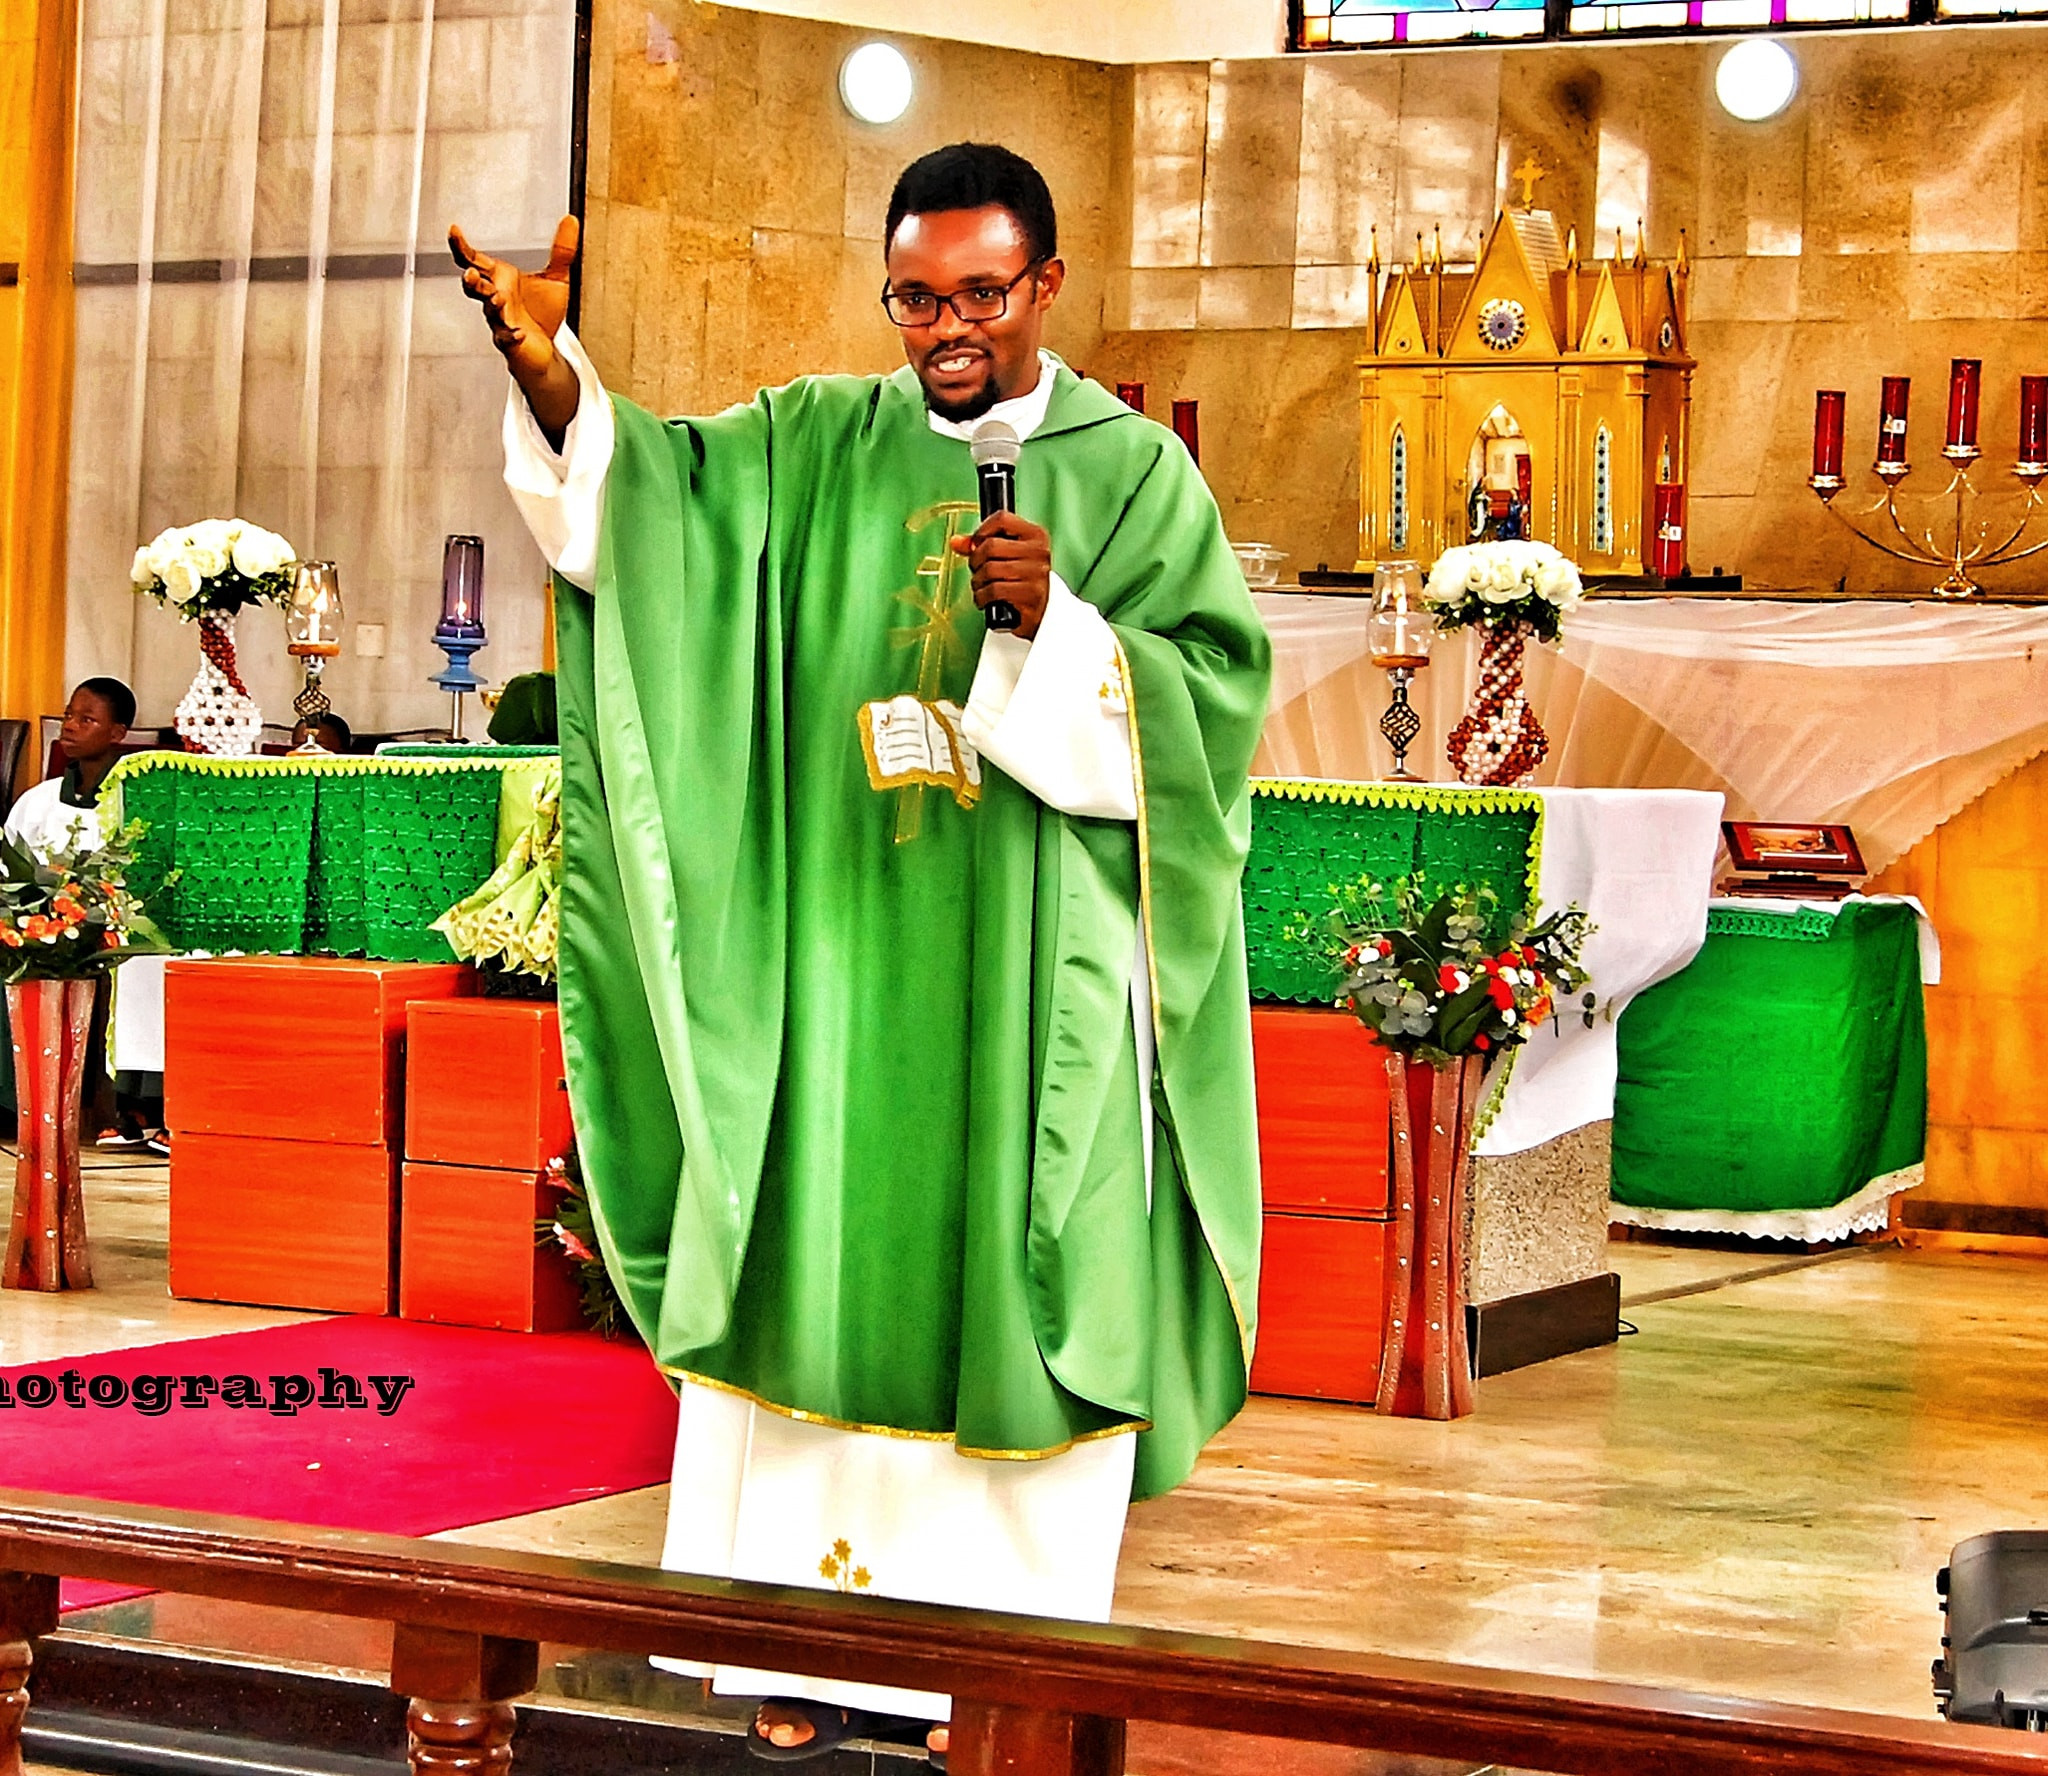 """""""Your comment is a progression in contradictions"""" - Nigerian Catholic priest fires back at man who told him to mind his business after he described the silhouette challenge as immoral"""